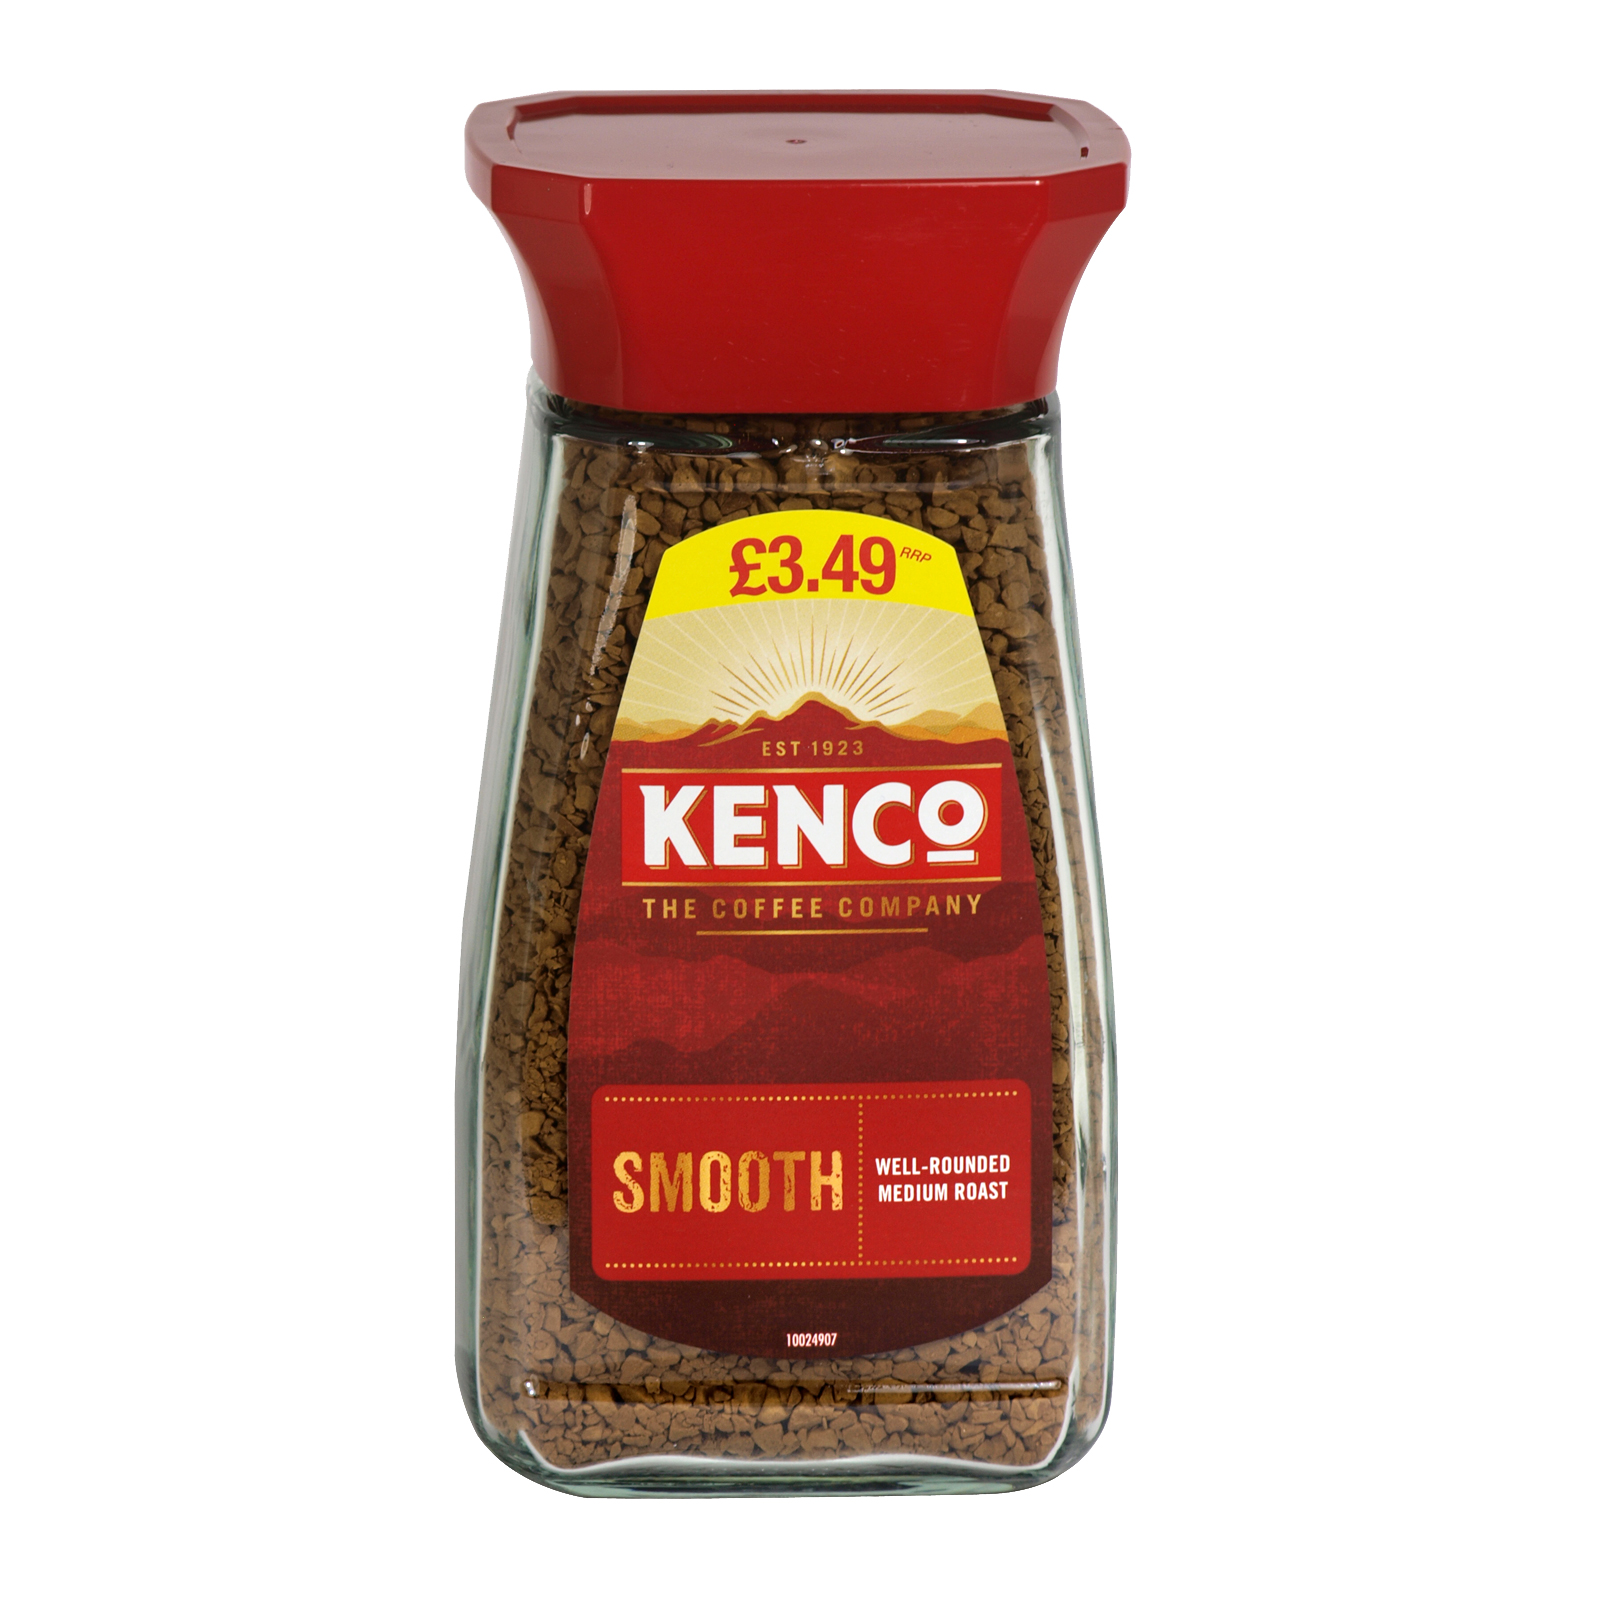 KENCO 100GM SMOOTH PM ?3.49 X6